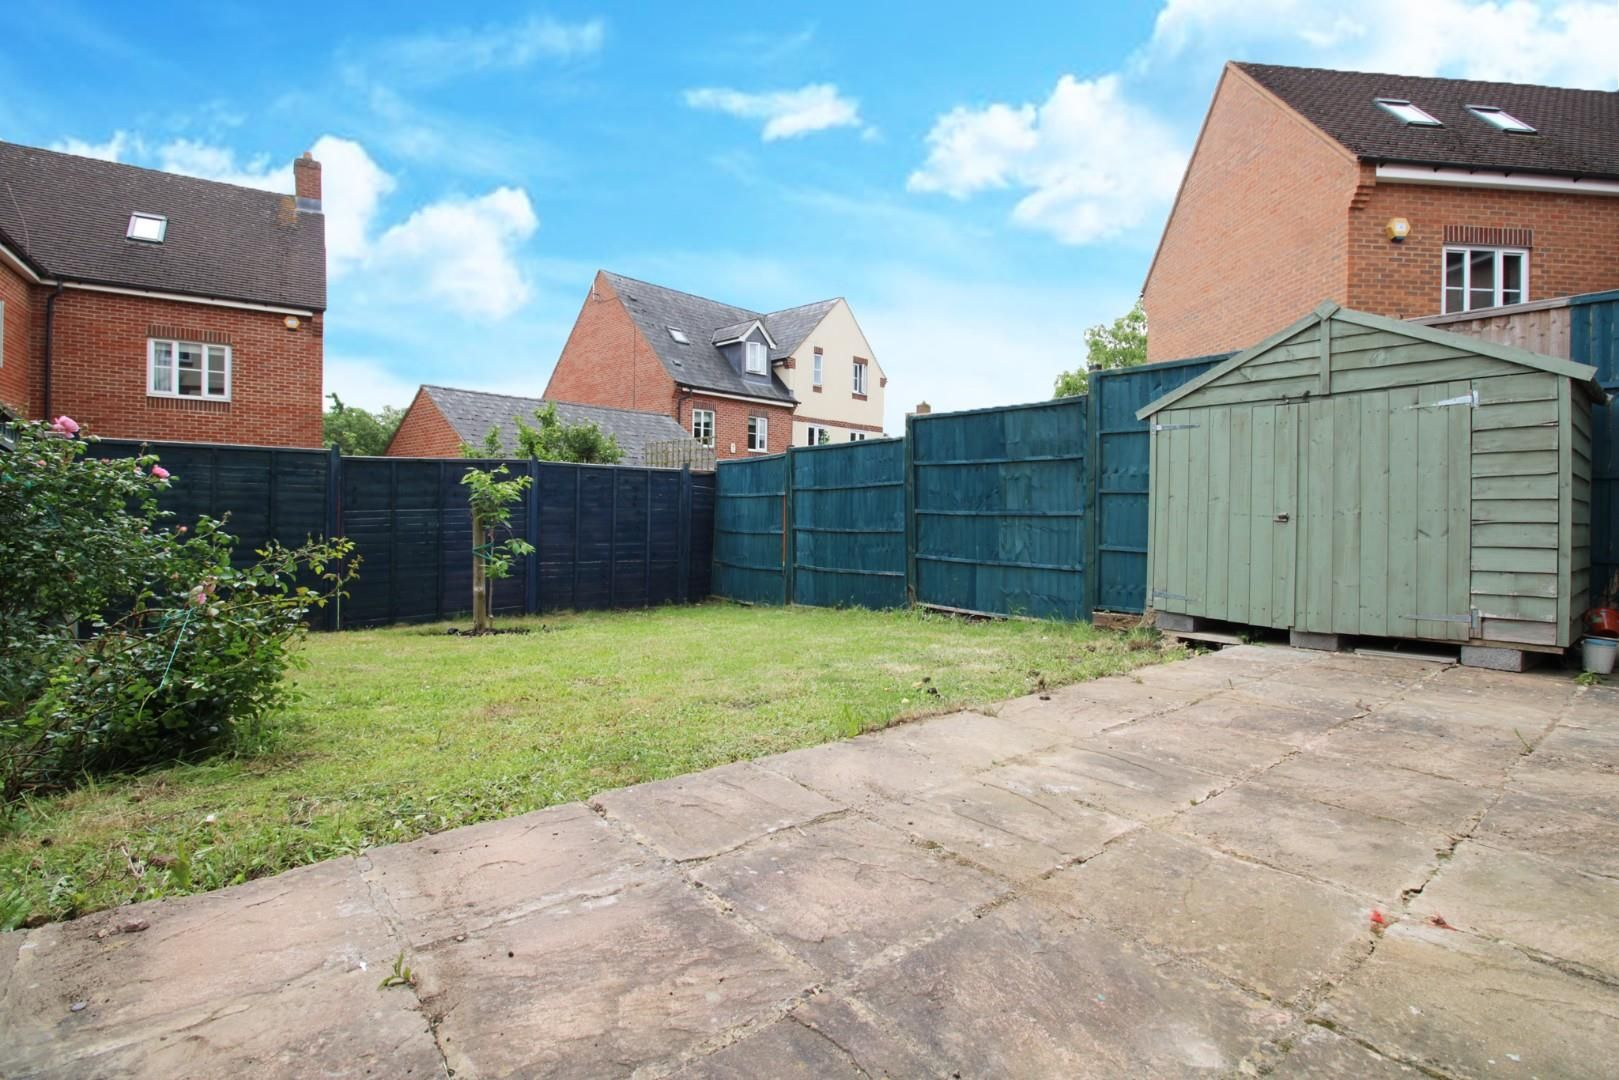 3 bed end of terrace to rent in Shinfield  - Property Image 12